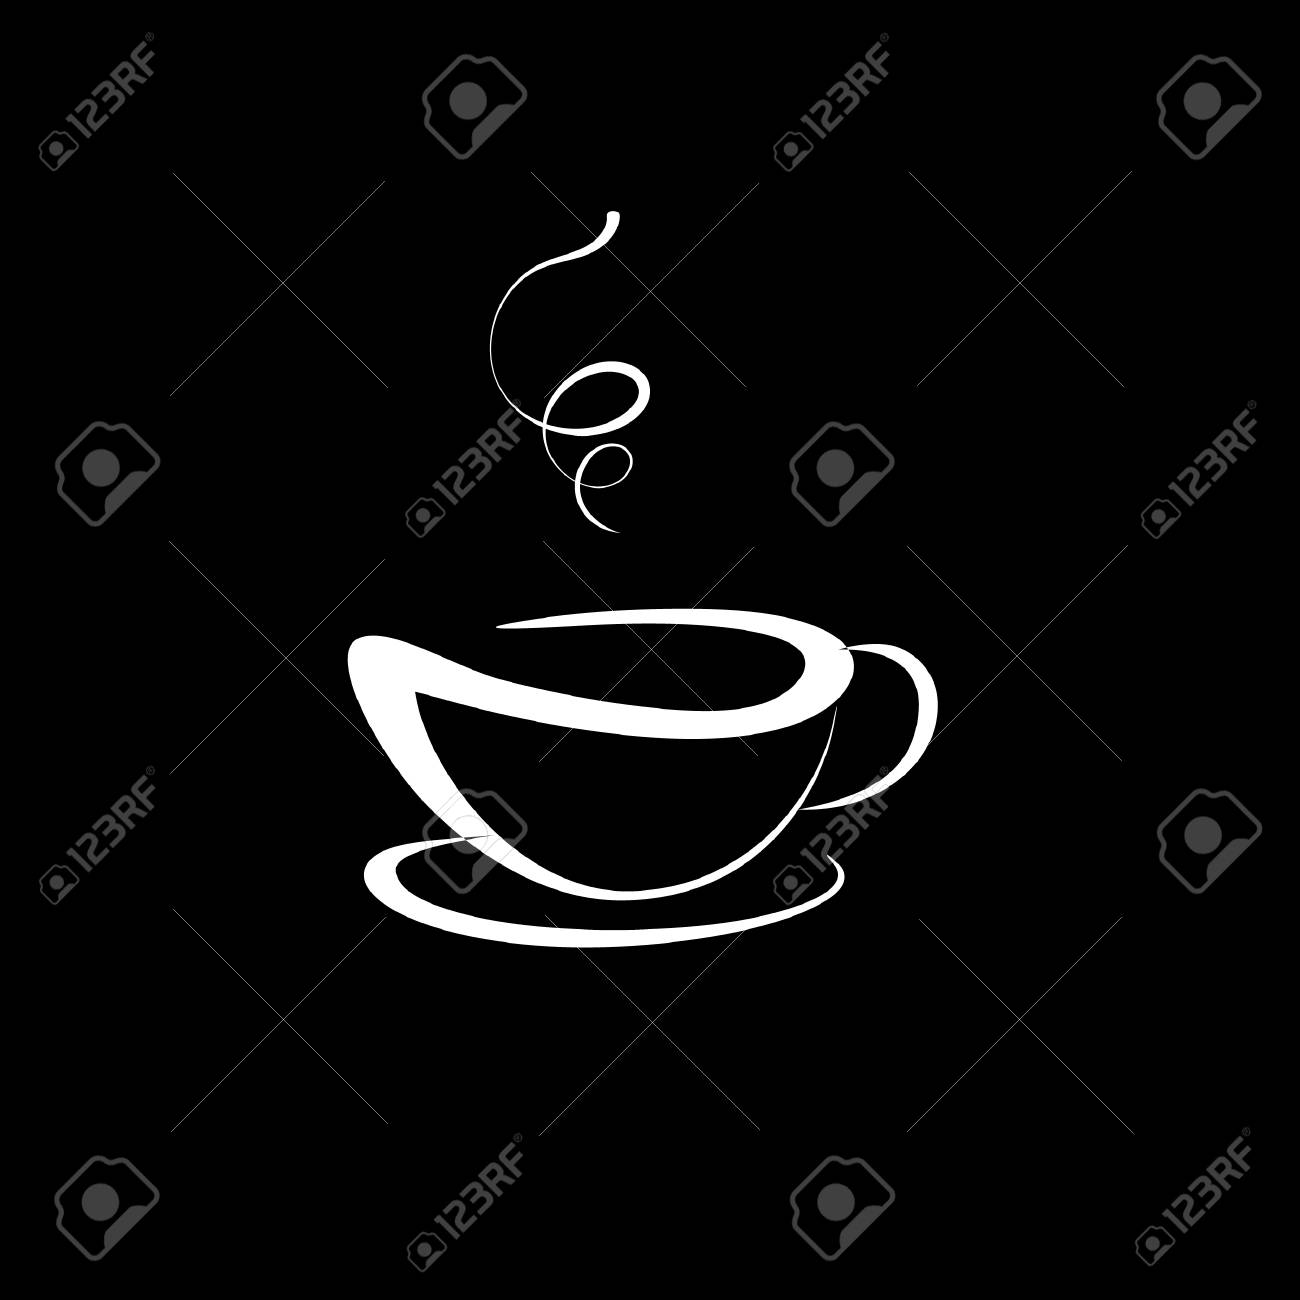 coffee or tea cup vector illustration coffee icon white cup royalty free cliparts vectors and stock illustration image 70980038 coffee or tea cup vector illustration coffee icon white cup